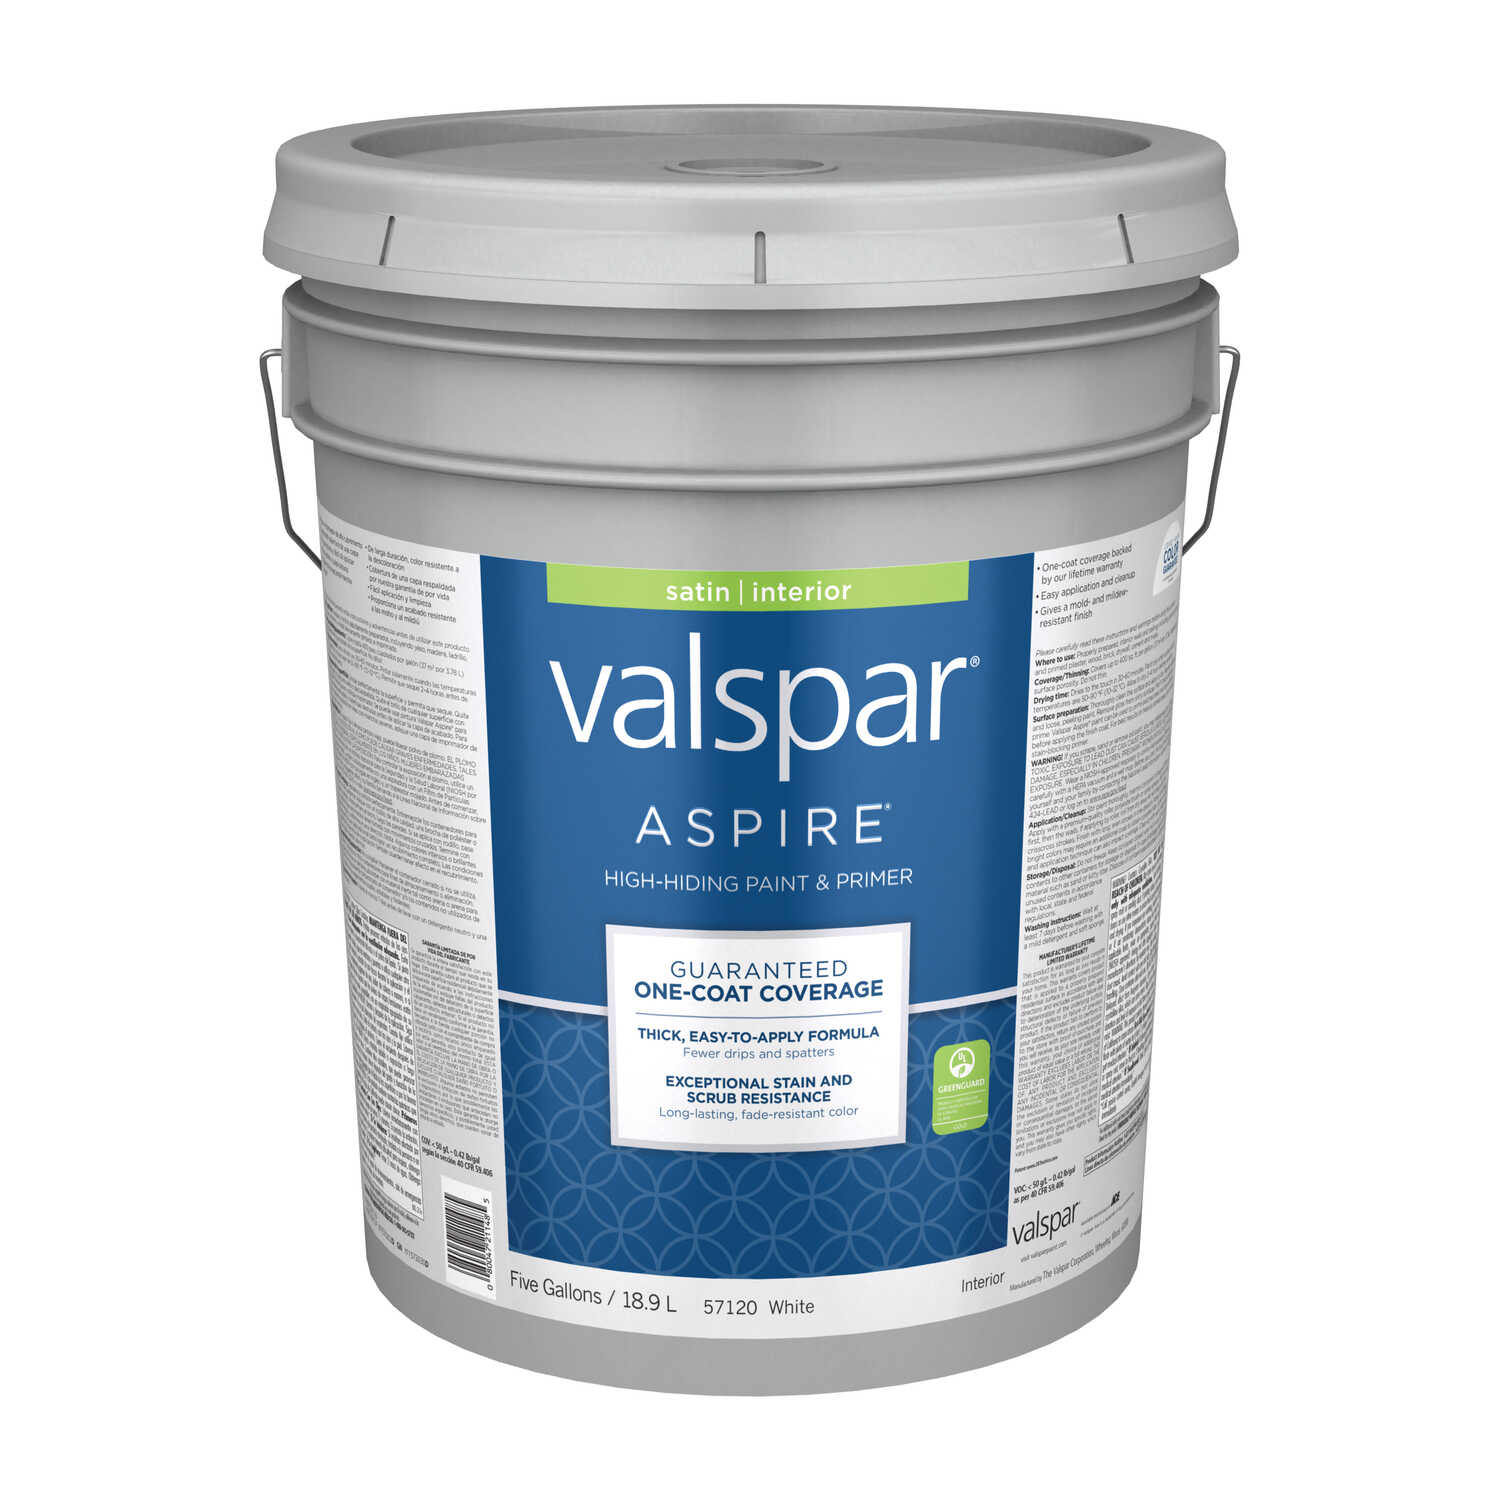 Valspar  Aspire  Basic White  Acylic Latex  5 gal. Paint and Primer  Satin